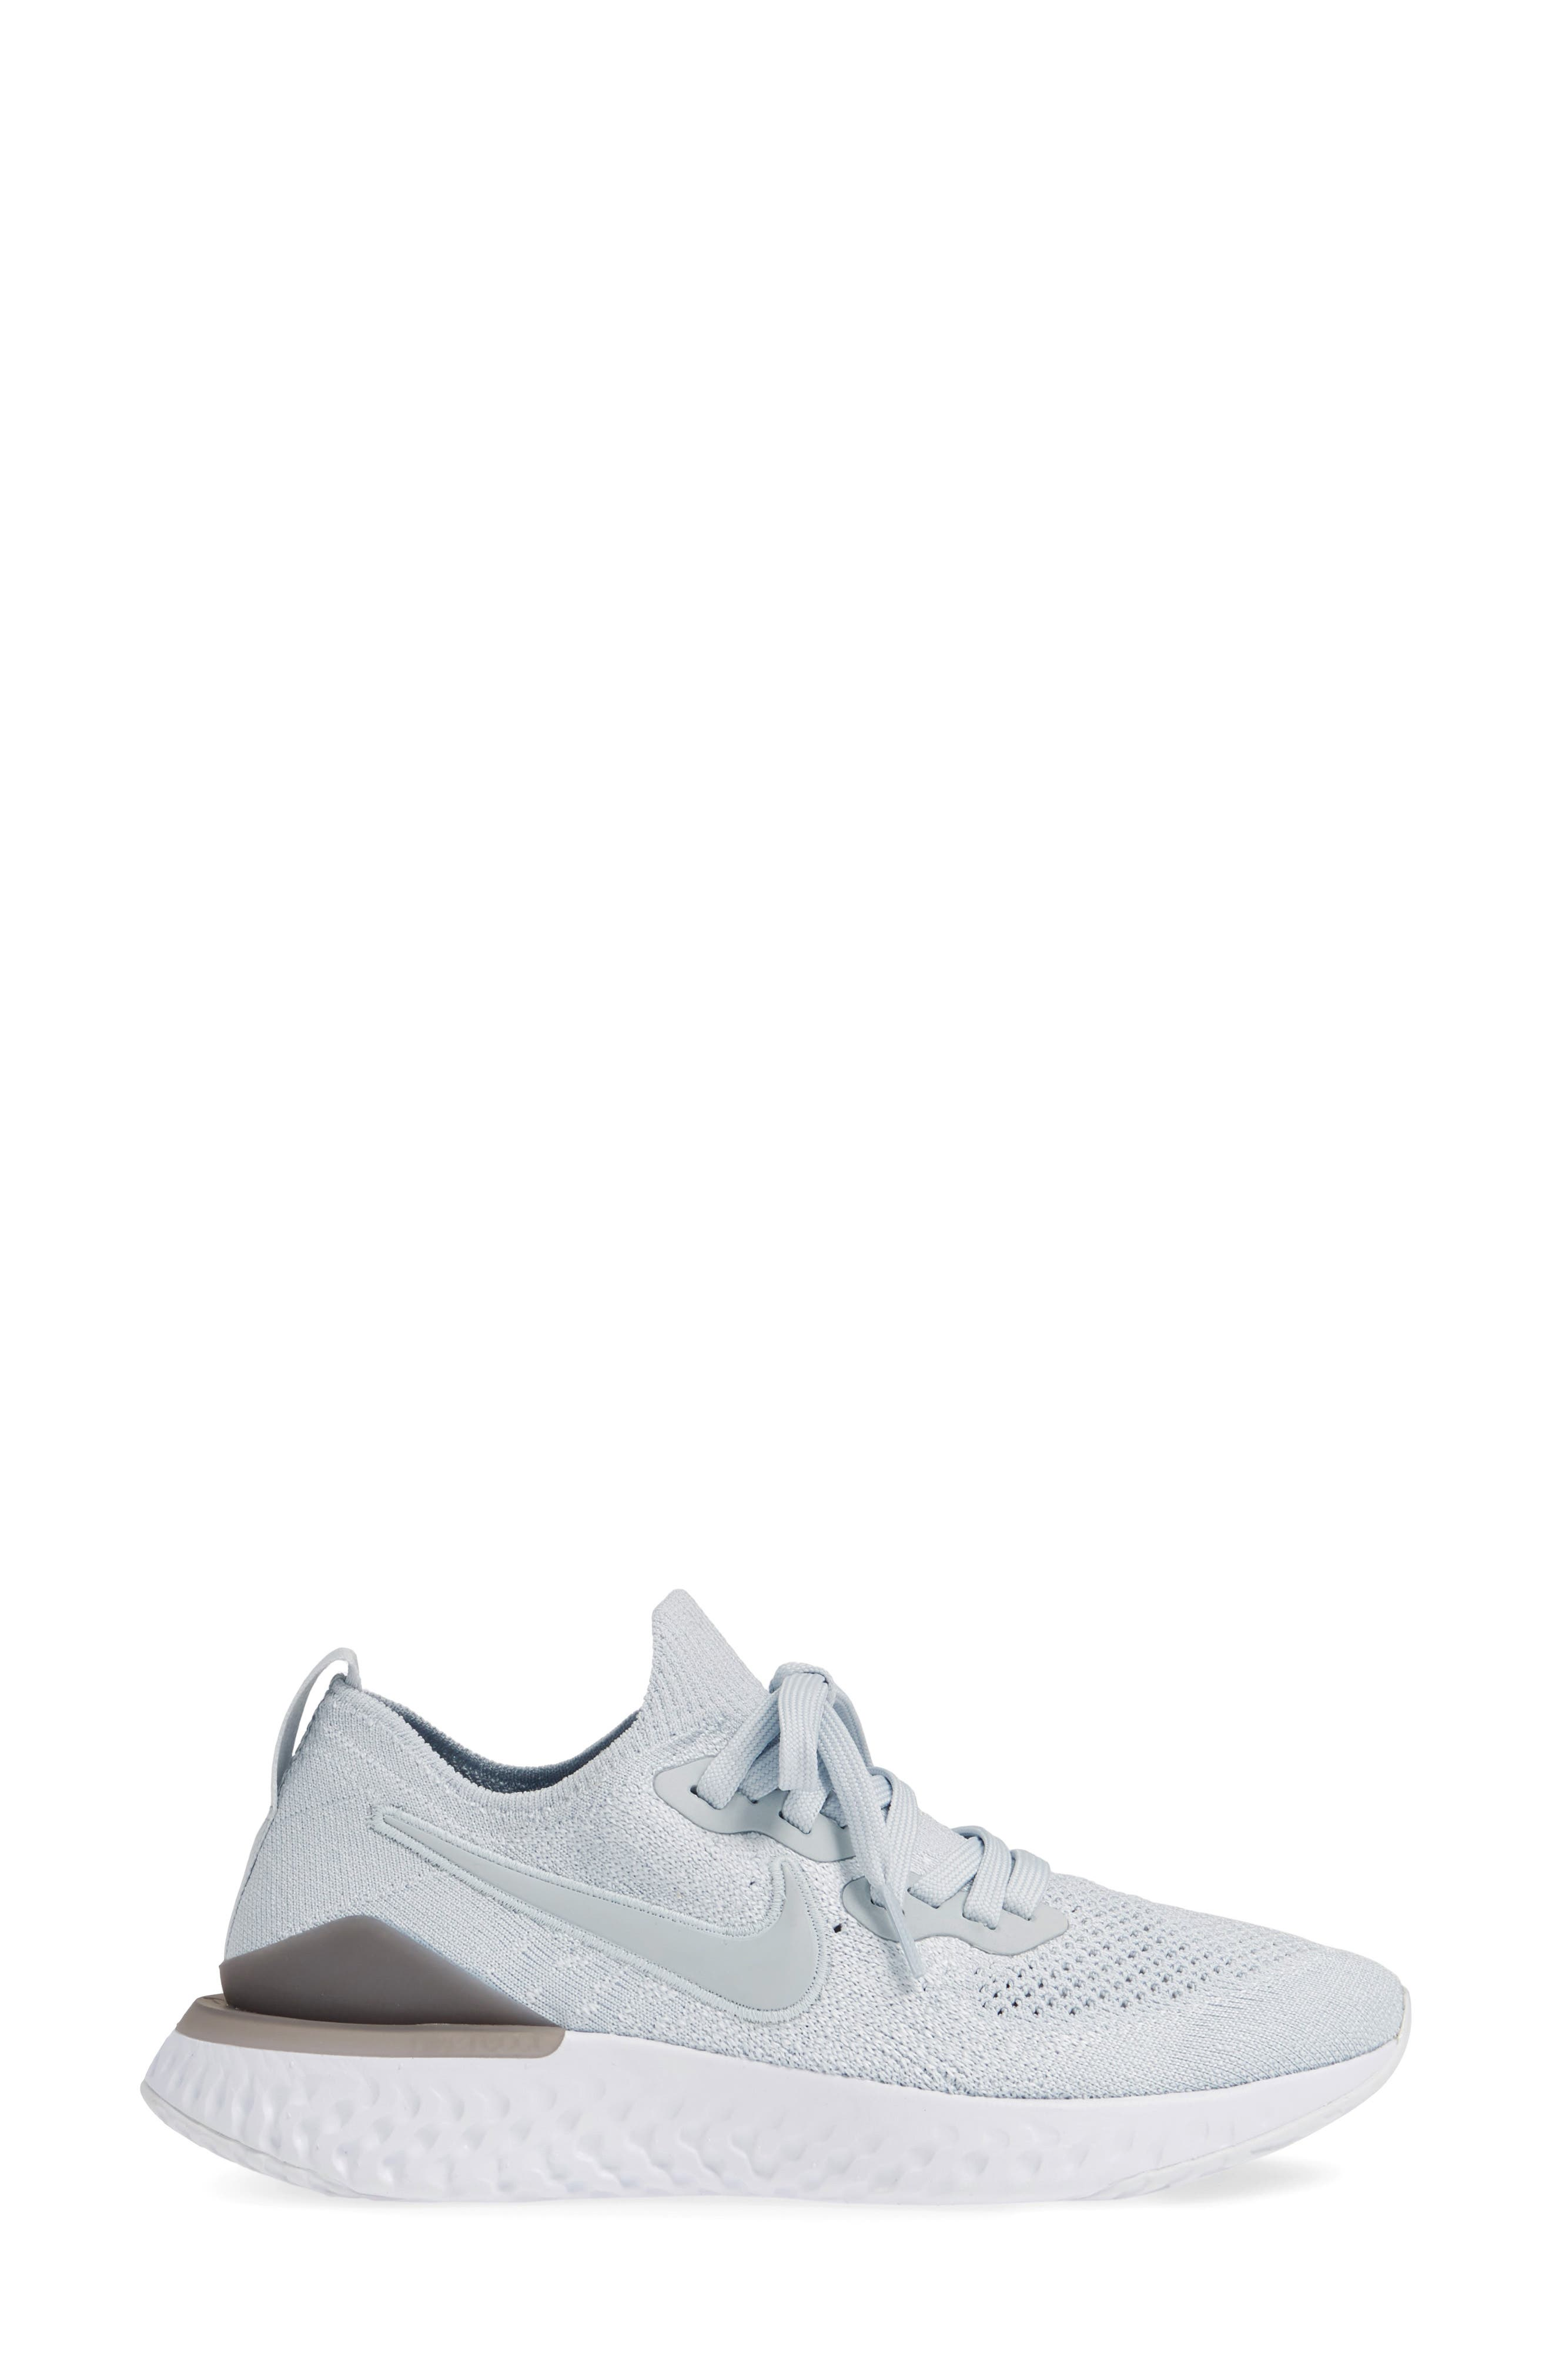 ,                             Epic React Flyknit 2 Running Shoe,                             Alternate thumbnail 4, color,                             PURE PLATINUM/ WOLF GREY